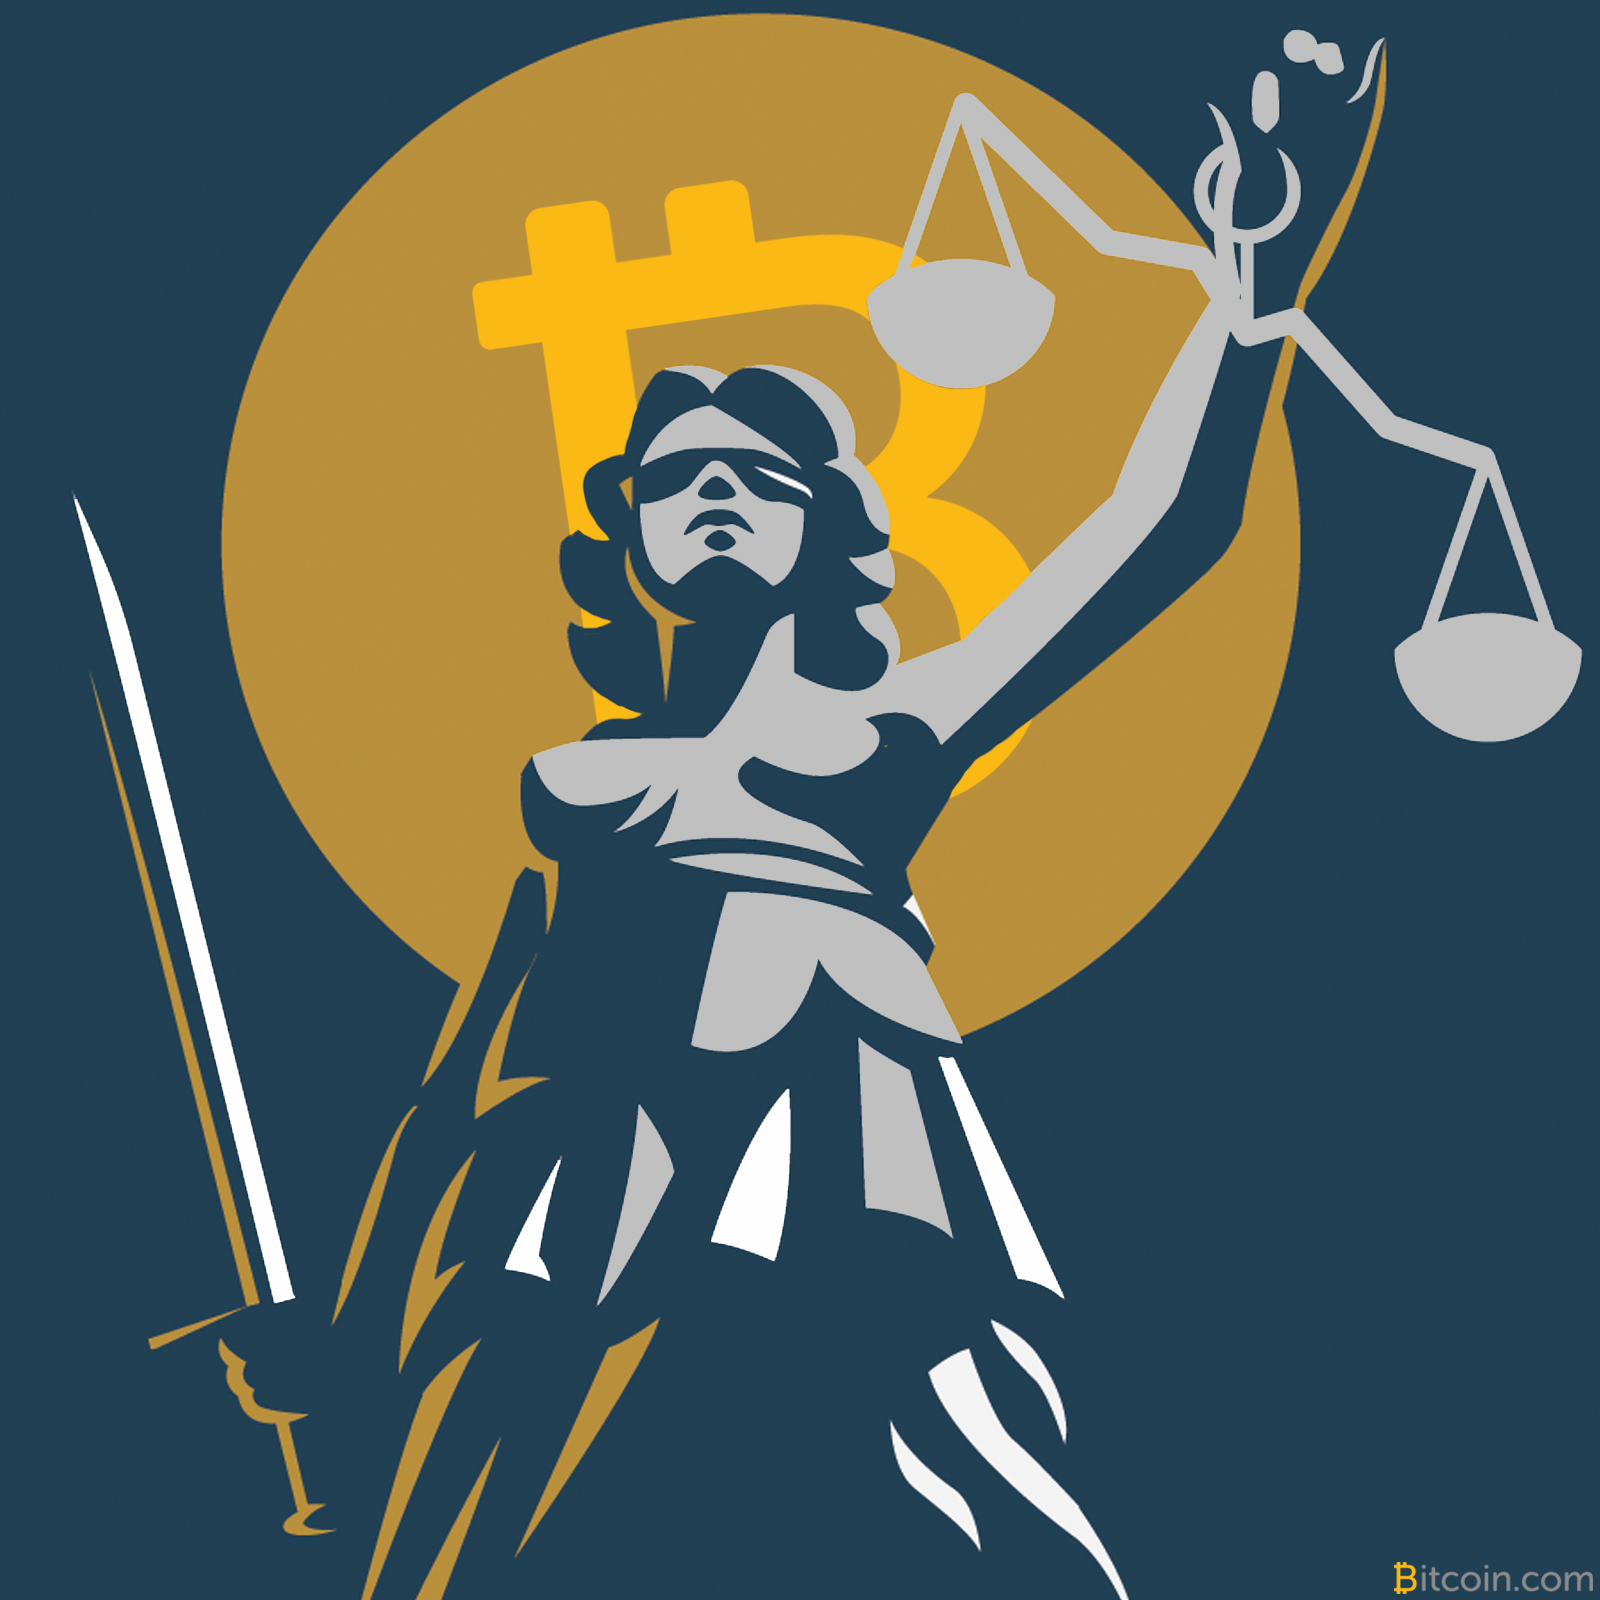 Florida Appeals Court Defines Bitcoin as Money as Espinoza Ruling Reversed - Bitcoin News